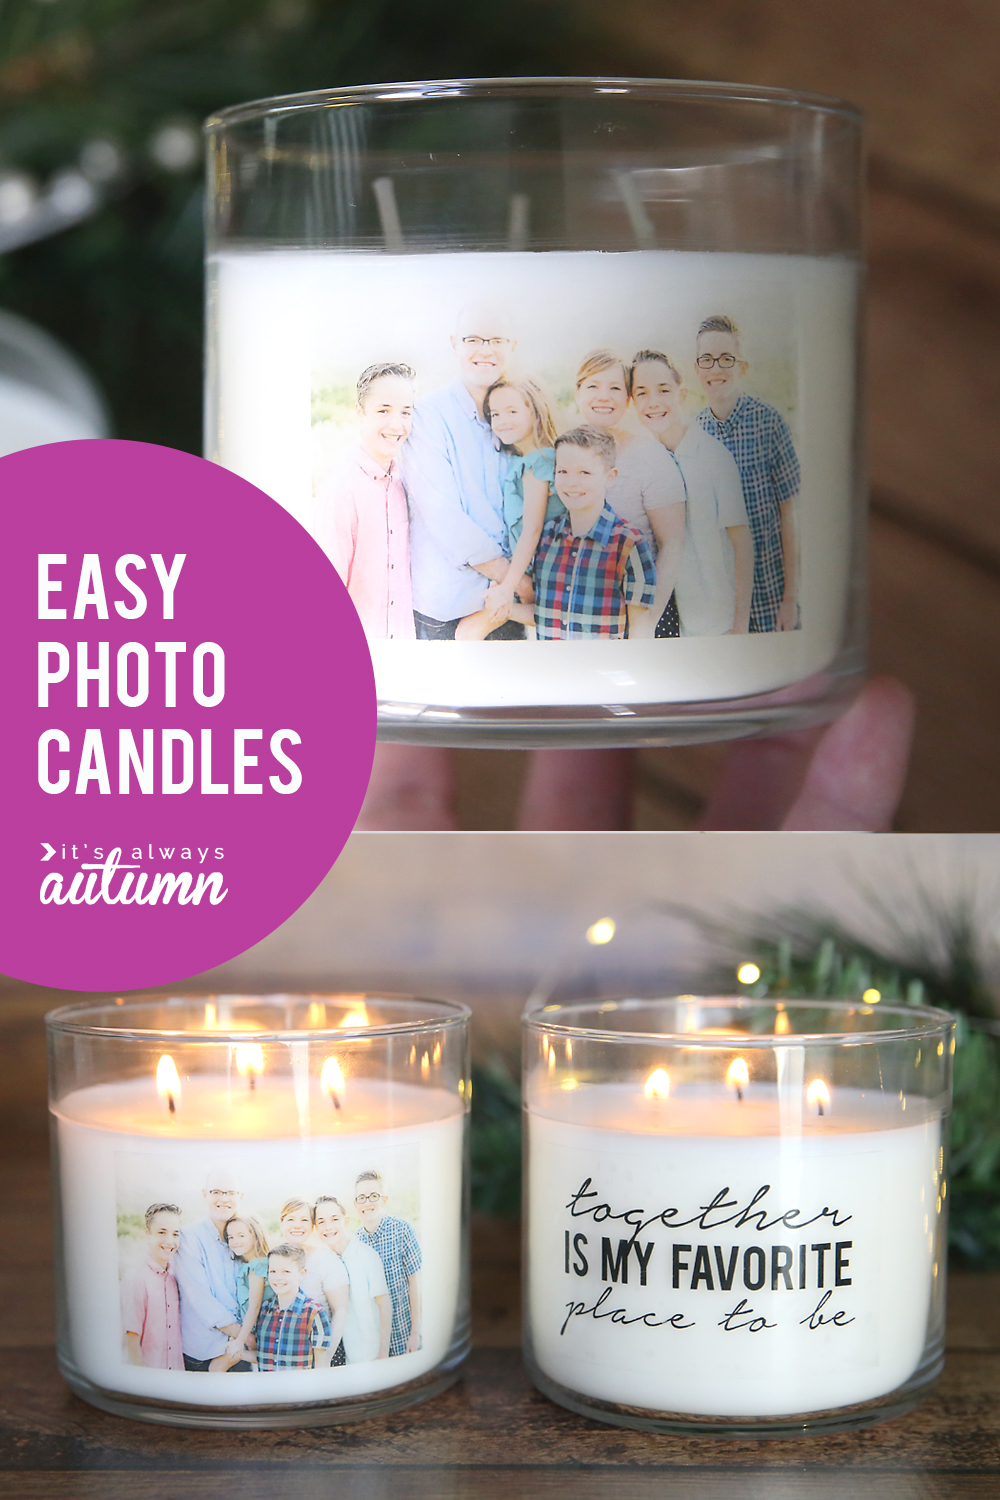 Gorgeous personalized photo candles!